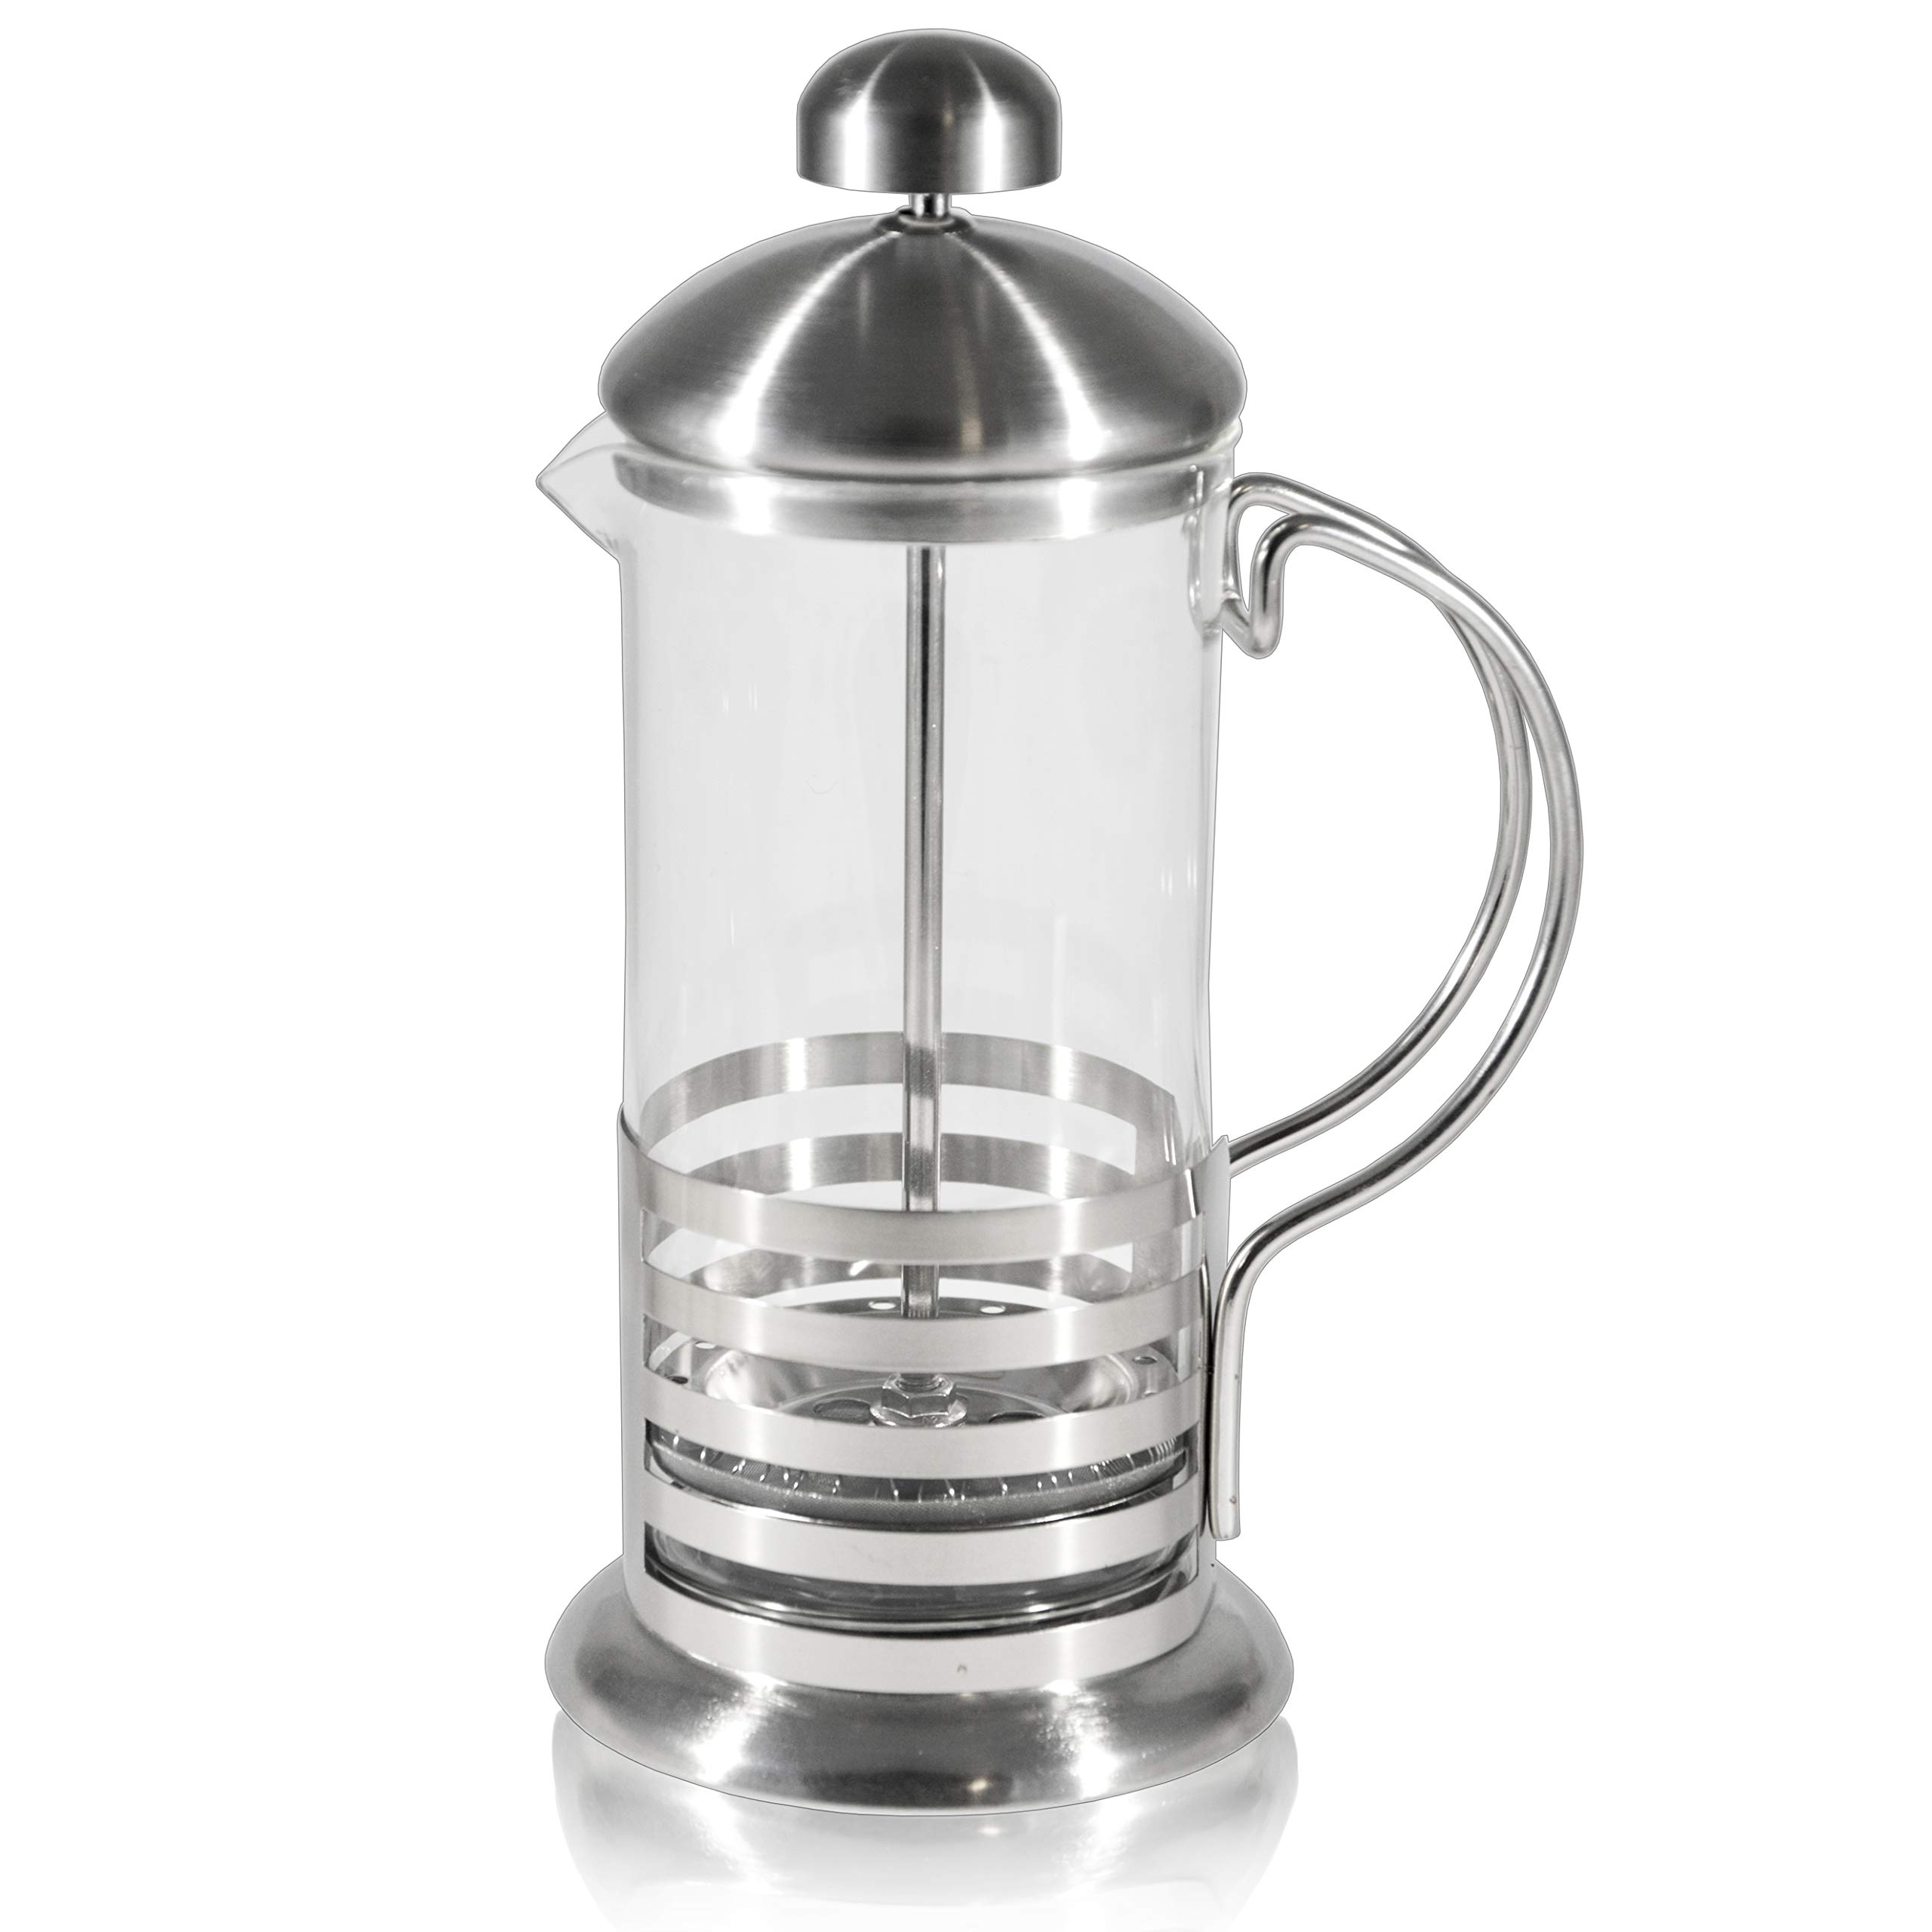 French Press Single Serving Coffee Maker, Small Affordable Coffee Brewer with Highest Filtration, 1 Cup Capacity (12 fl oz/0.4 liter) (Silver) (Silver)